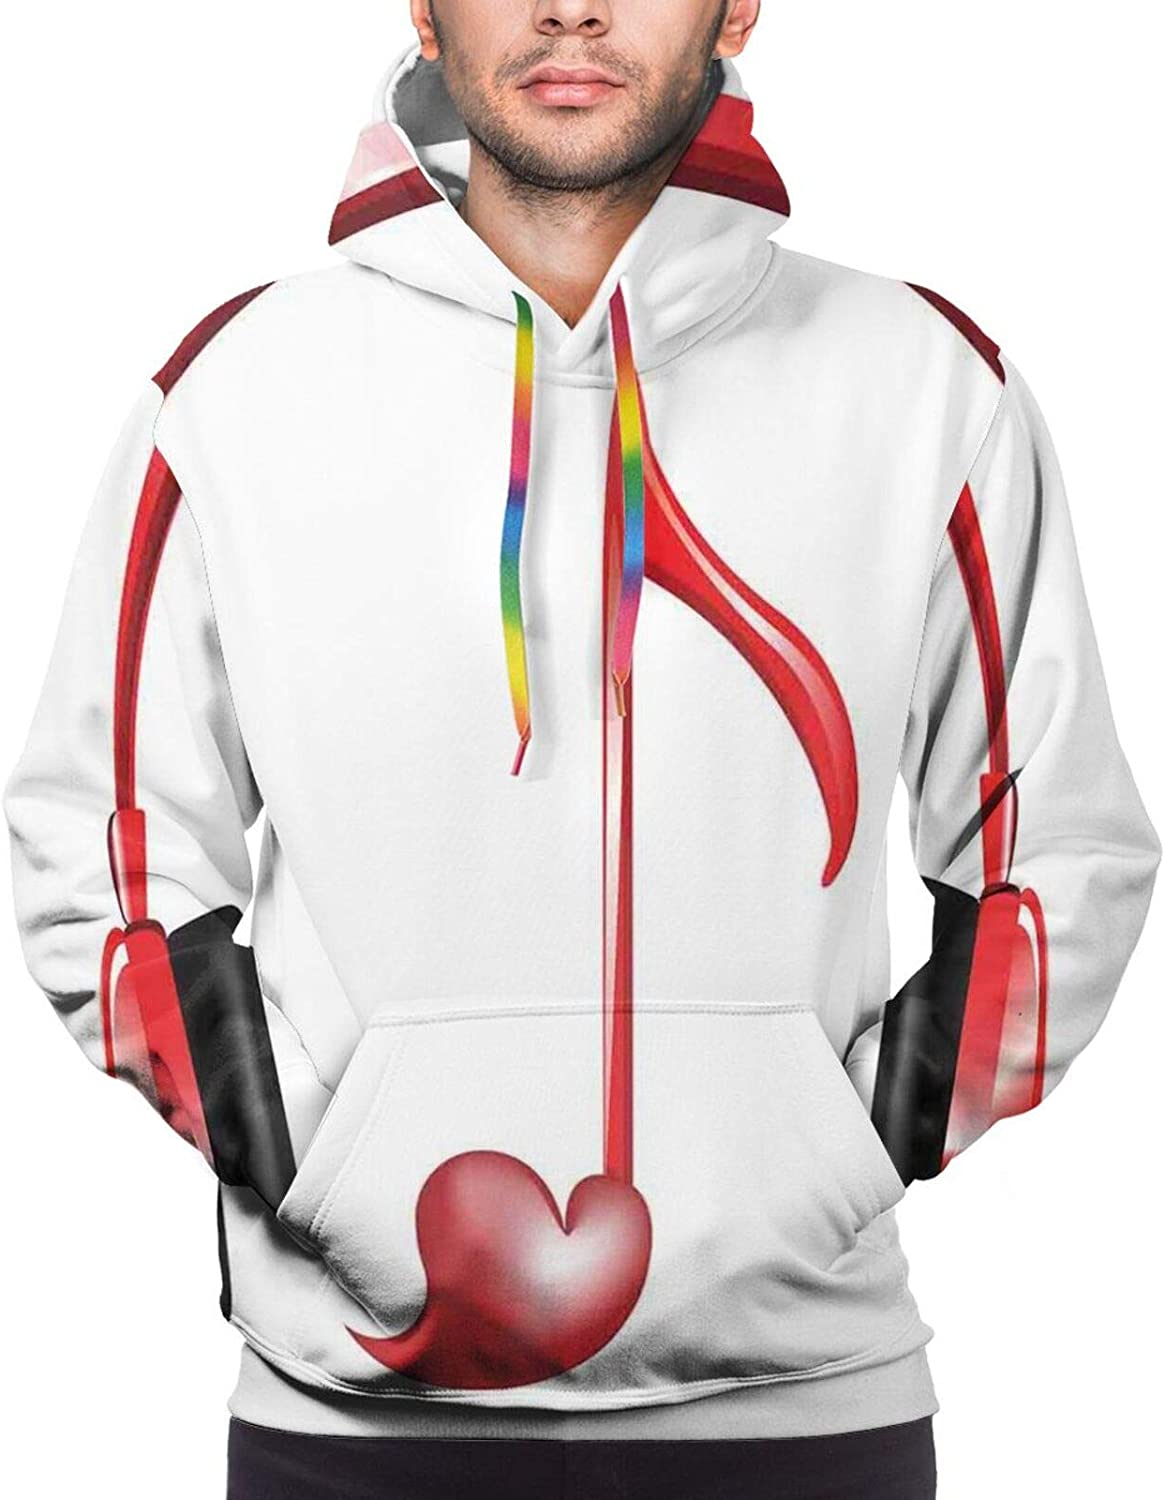 Men's Hoodies Sweatshirts,Love Romance Themed Beautiful Continuous Pattern with Colorful Flowers with Dots